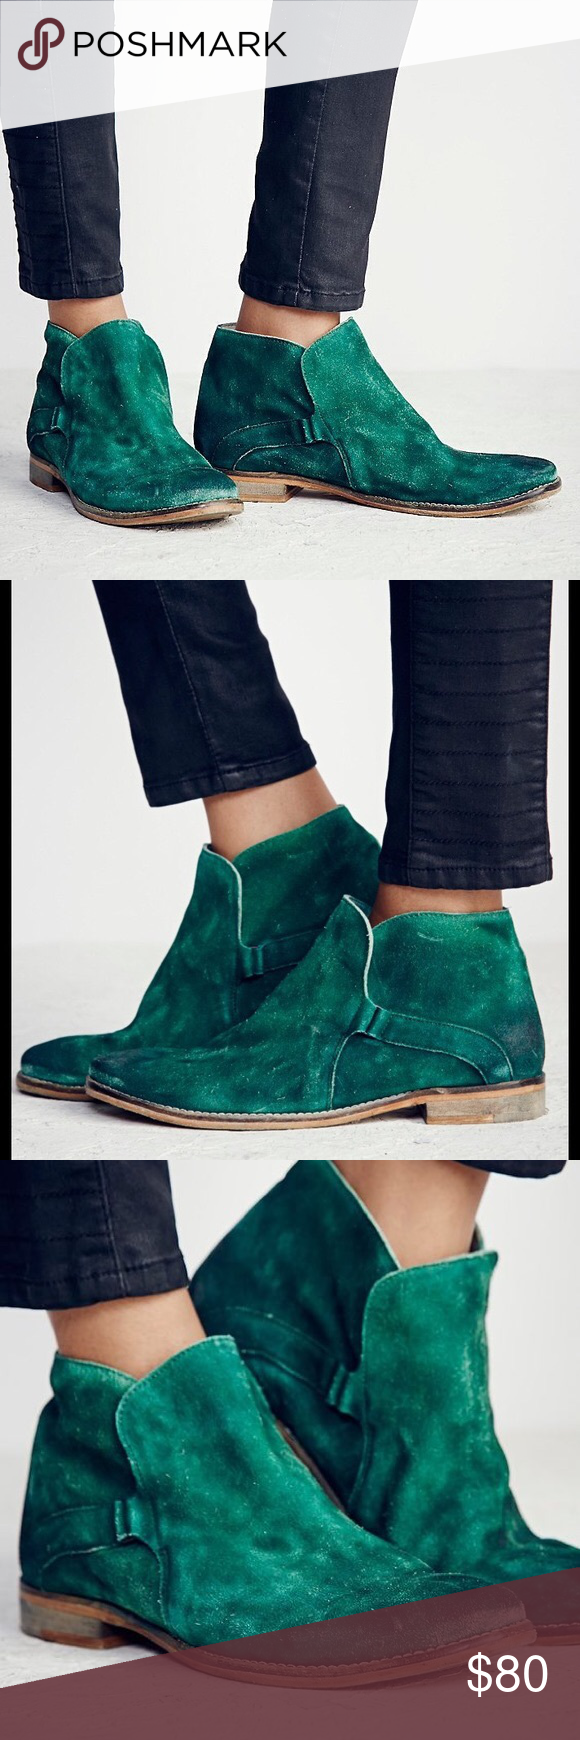 Free People Summit Ankle Boot Green Leather 38 8 EUC worn 2x.  Sold out everywhere. Vintage inspired distressed suede ankle boots, that have been individually hand washed to achieve a worn-in look and feel. Easy slip-on surplice design with hidden elastic gusset. Each pair will vary due to the hand washing technique used. This vintage-inspired style has been handcrafted to reflect the look of an aged wear. The scuffing, marking and washed effects give this shoe its own unique…